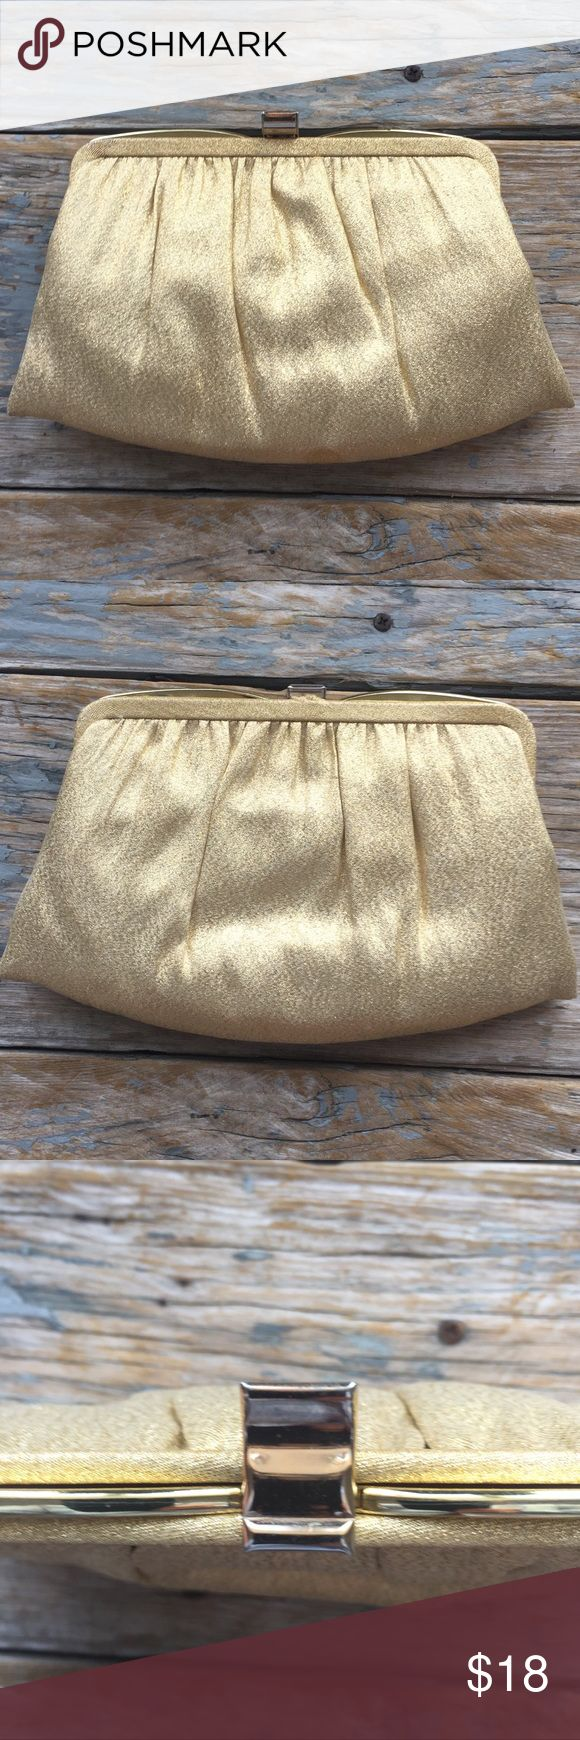 Vintage Andi Gold Clutch Vintage Clutch by Andi. Gold lame fabric with gold frame. There is a small stain on the bottom. I've not yet tried to remove it but I didn't notice it at first. Inside has wear, but it has double compartments and that's awesome. Gold chain. Vintage Bags Clutches & Wristlets